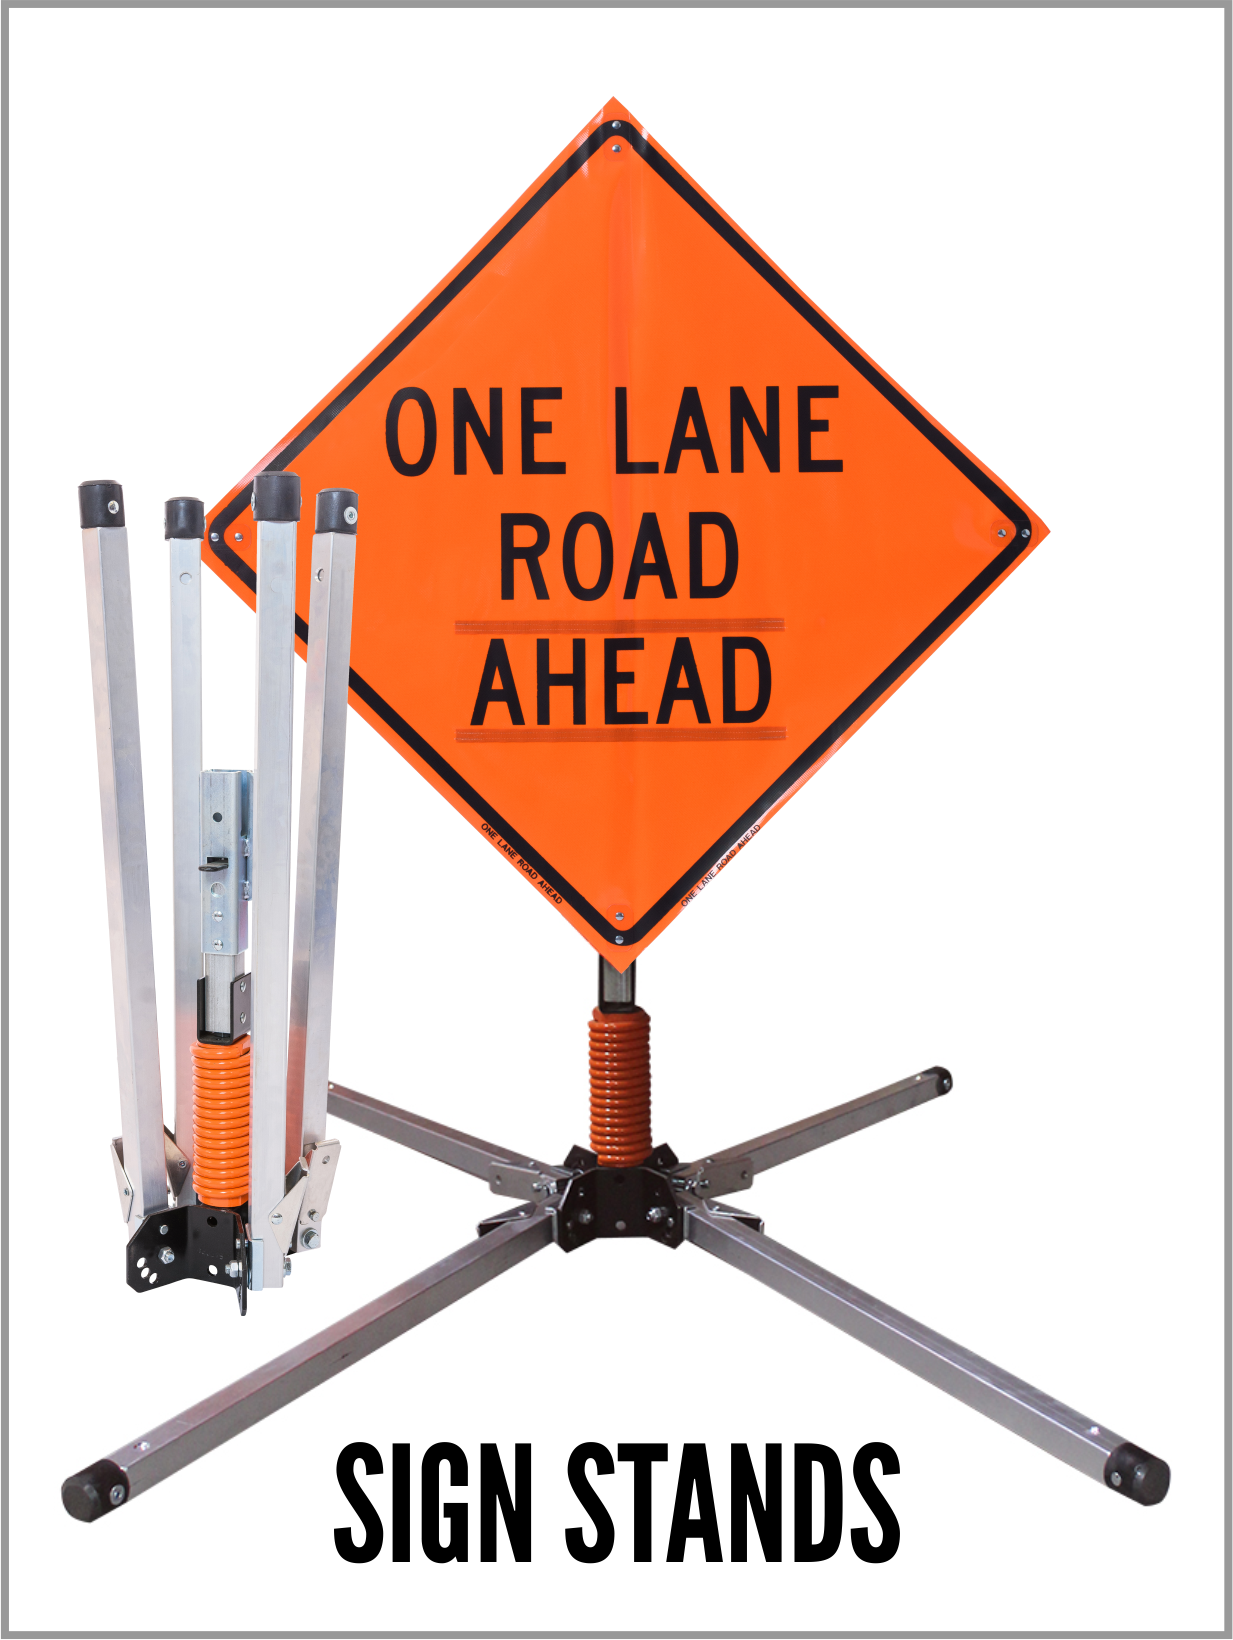 sign stands, roll ups, windmaster, wind master, wind deflection, construction zone signage, reflective traffic, where to buy traffic signs,